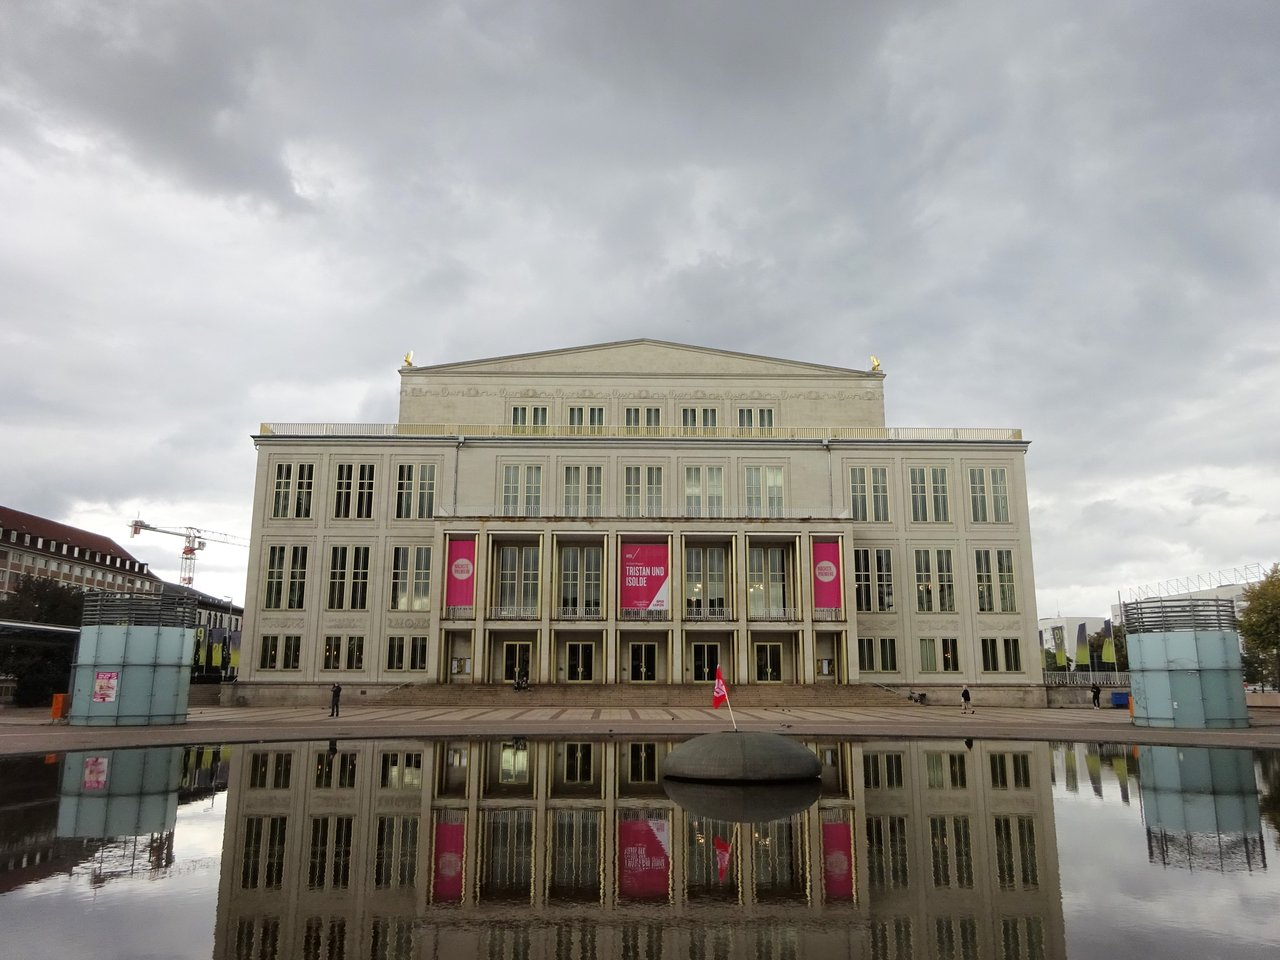 Opernhaus Leipzig 2020 All You Need To Know Before You Go With Photos Tripadvisor